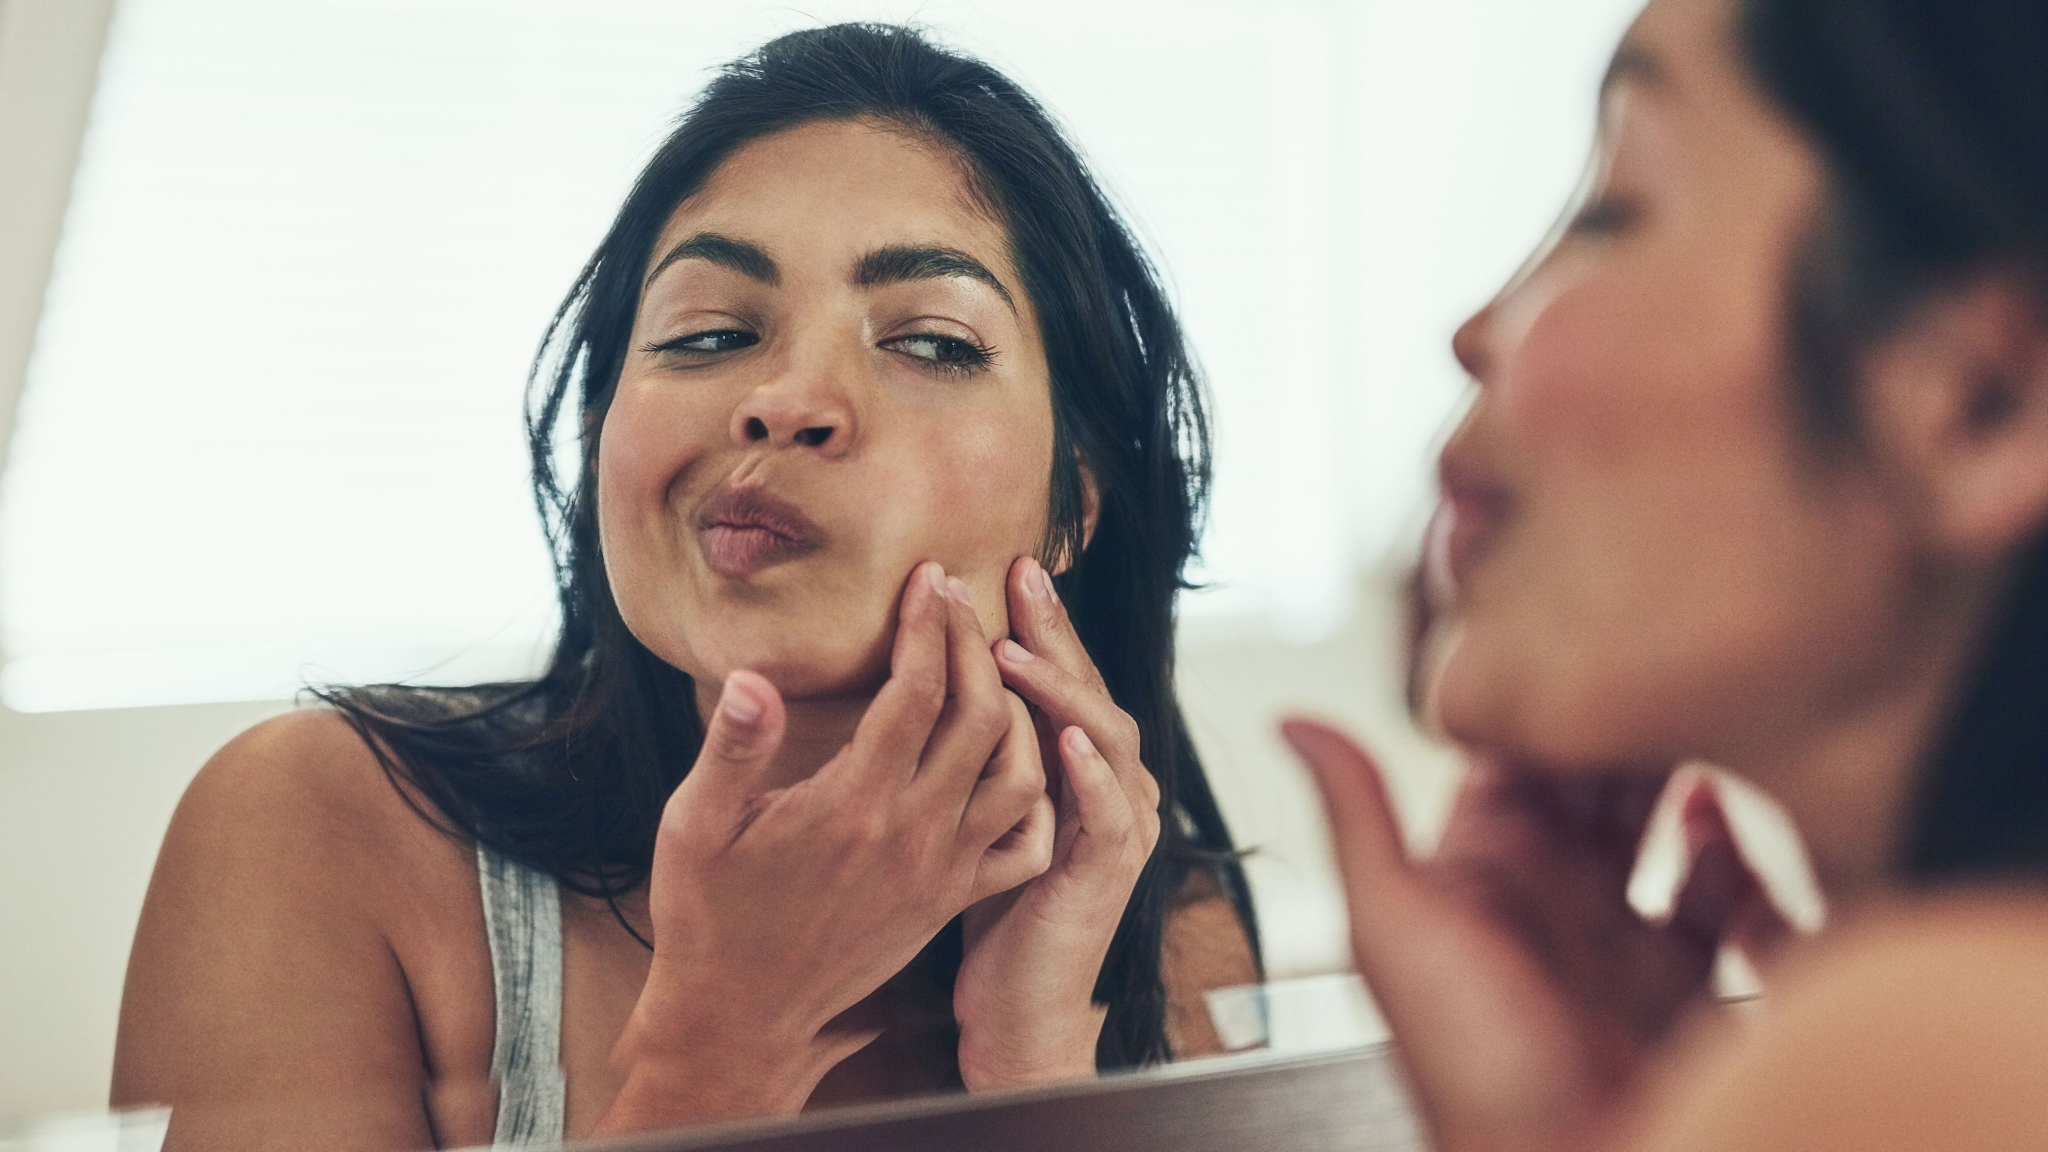 Suffering from Stubborn Acne? Maybe It's Time to Switch Diets